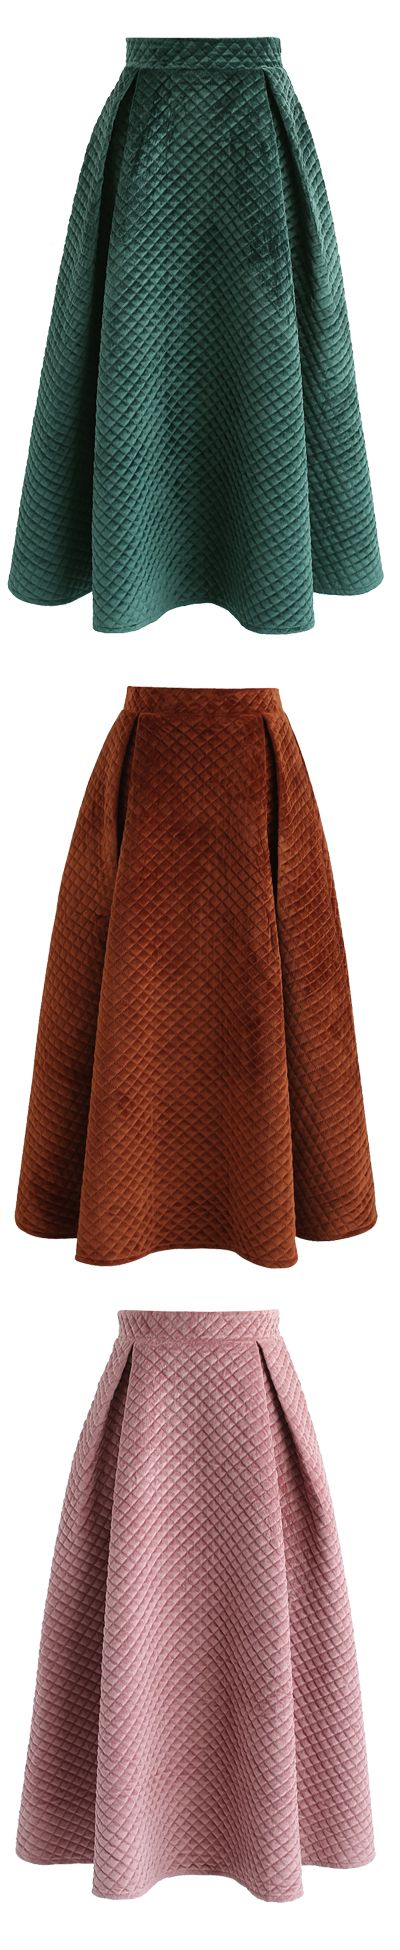 Fancy Sheen Quilted Velvet Skirt in Green/Caramel/Pink